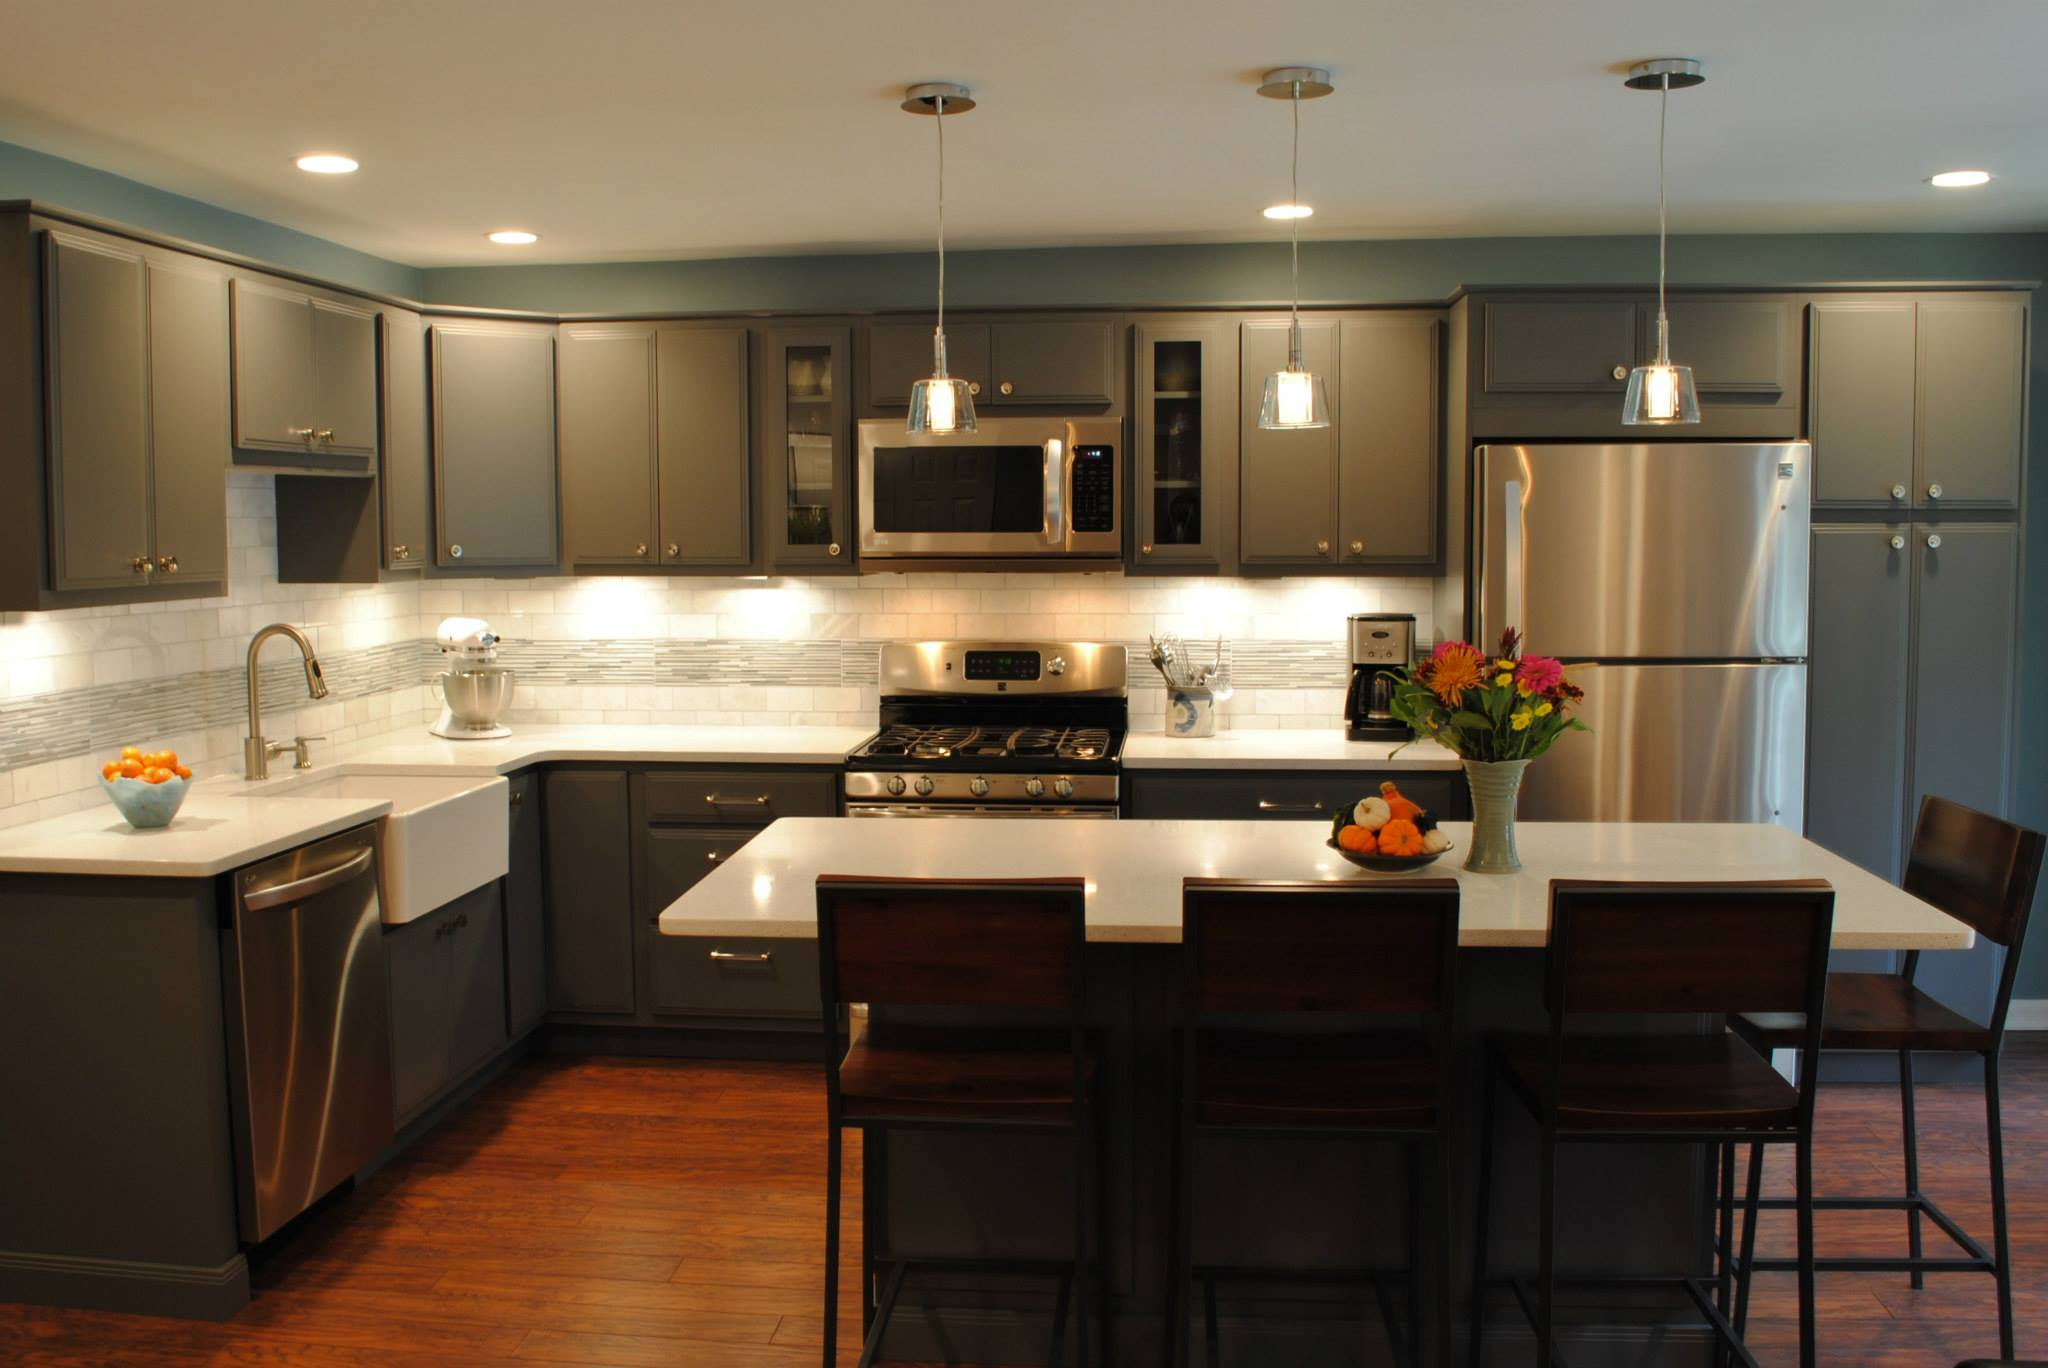 dark khaki aristokraft cabinets matched with white back splash plus oven and wooden floor for kitchen decoration ideas